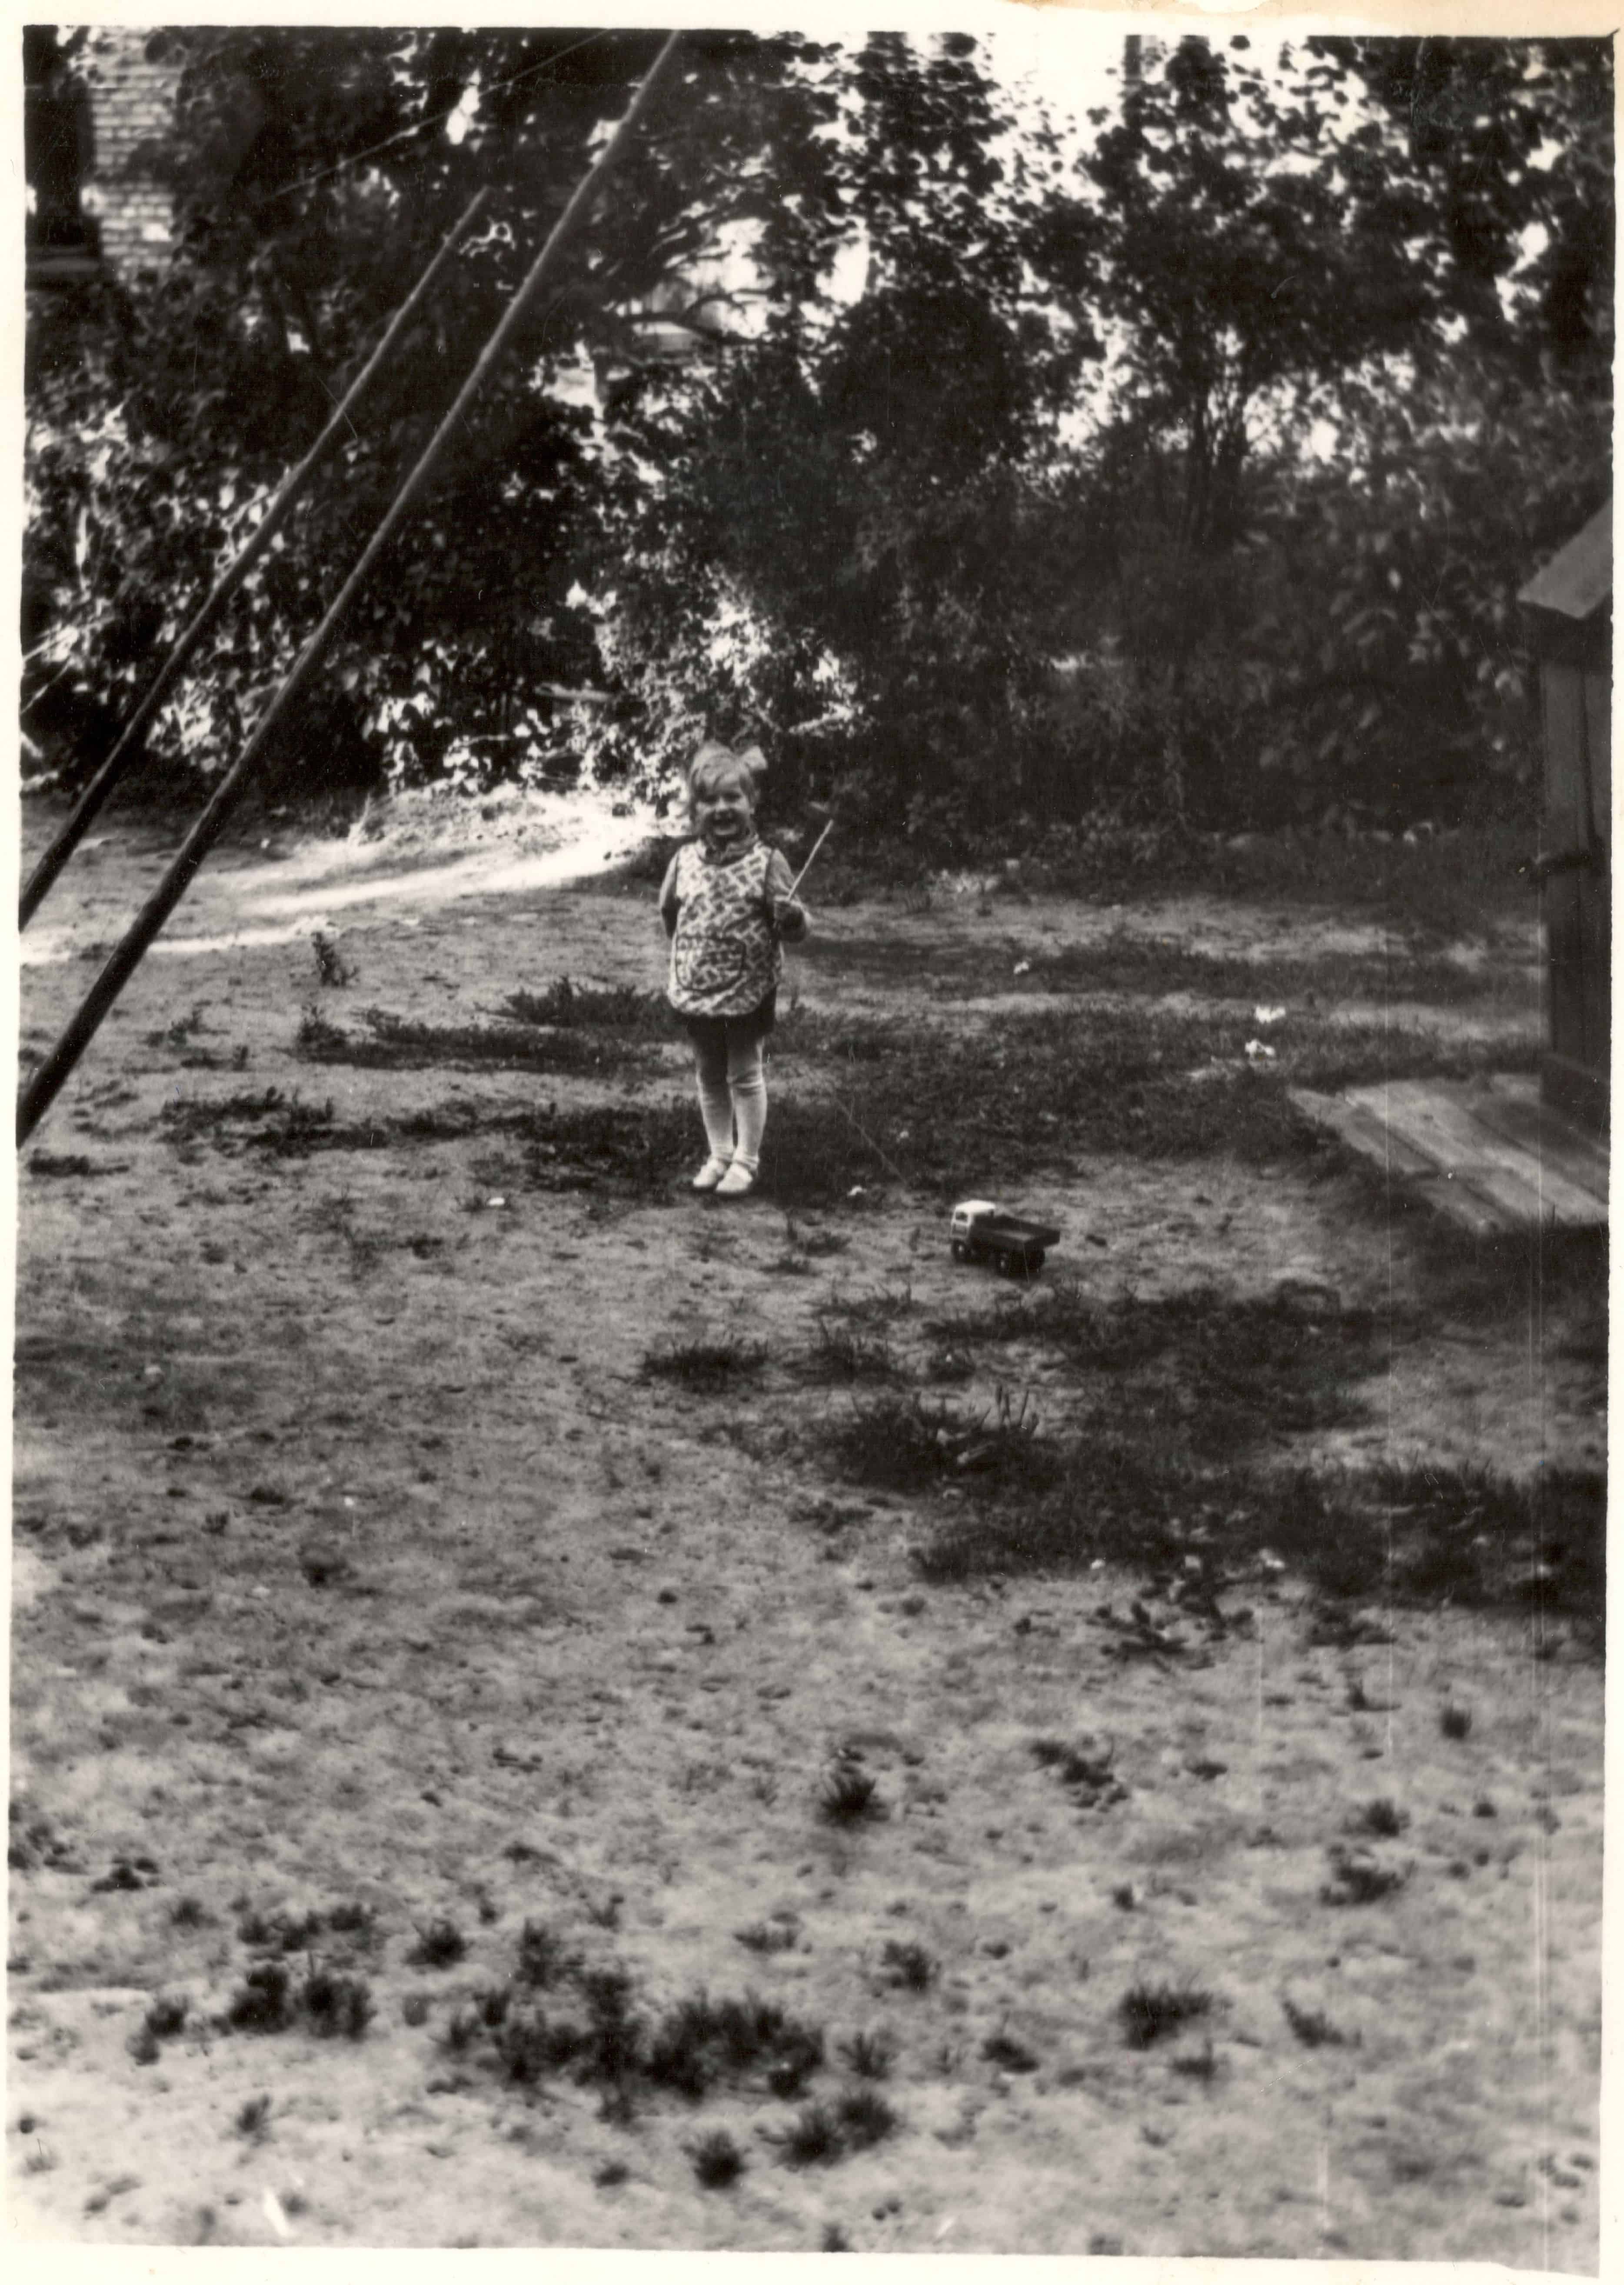 Sandra Martinsone in the yard of Olive street 5 -